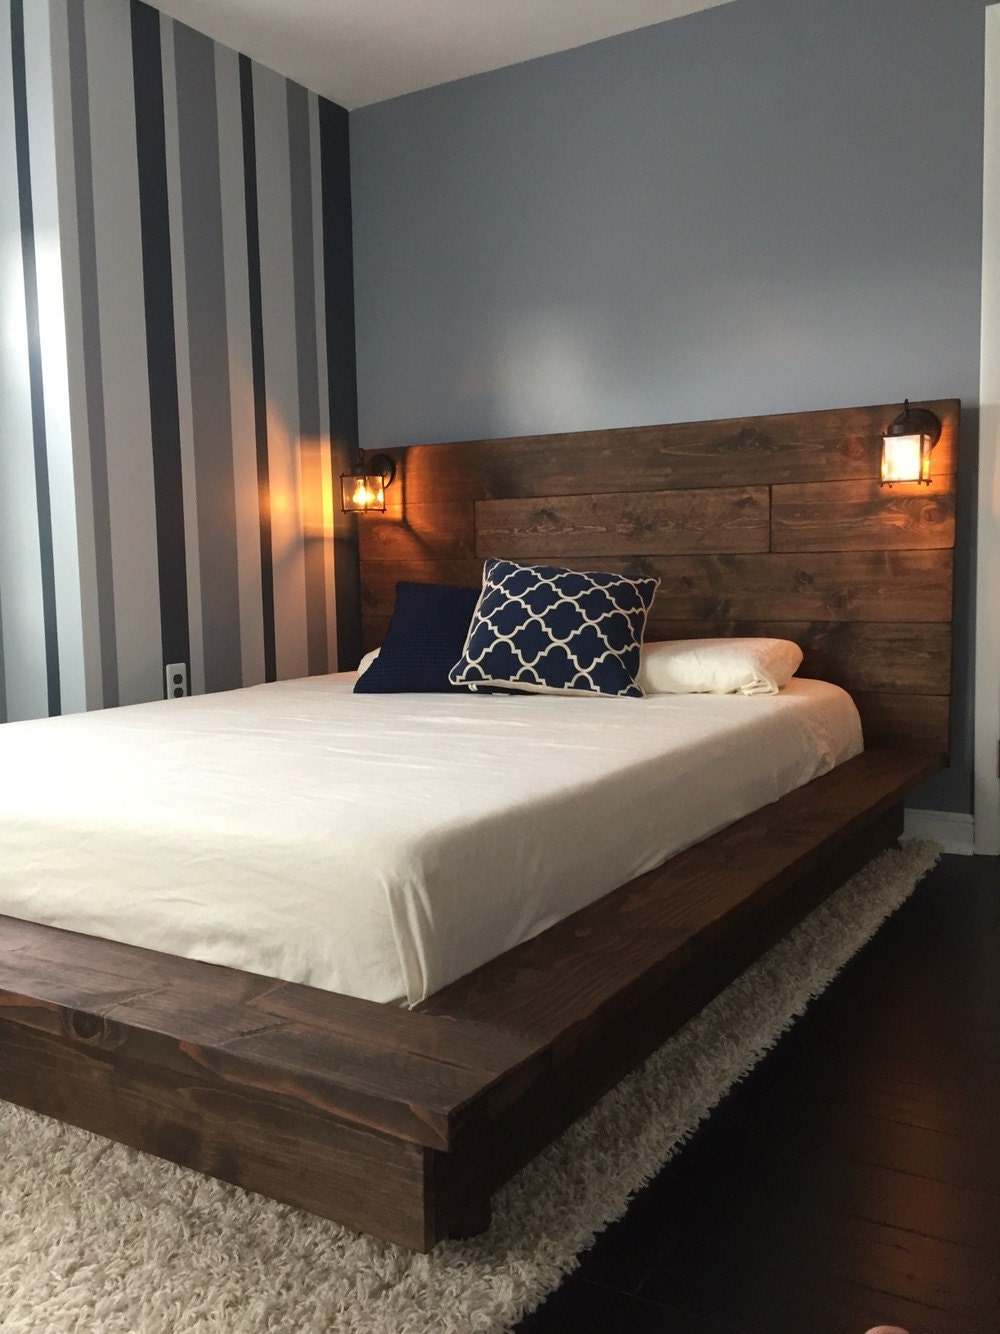 Floating wood platform bed frame with lighted Wood platform bed